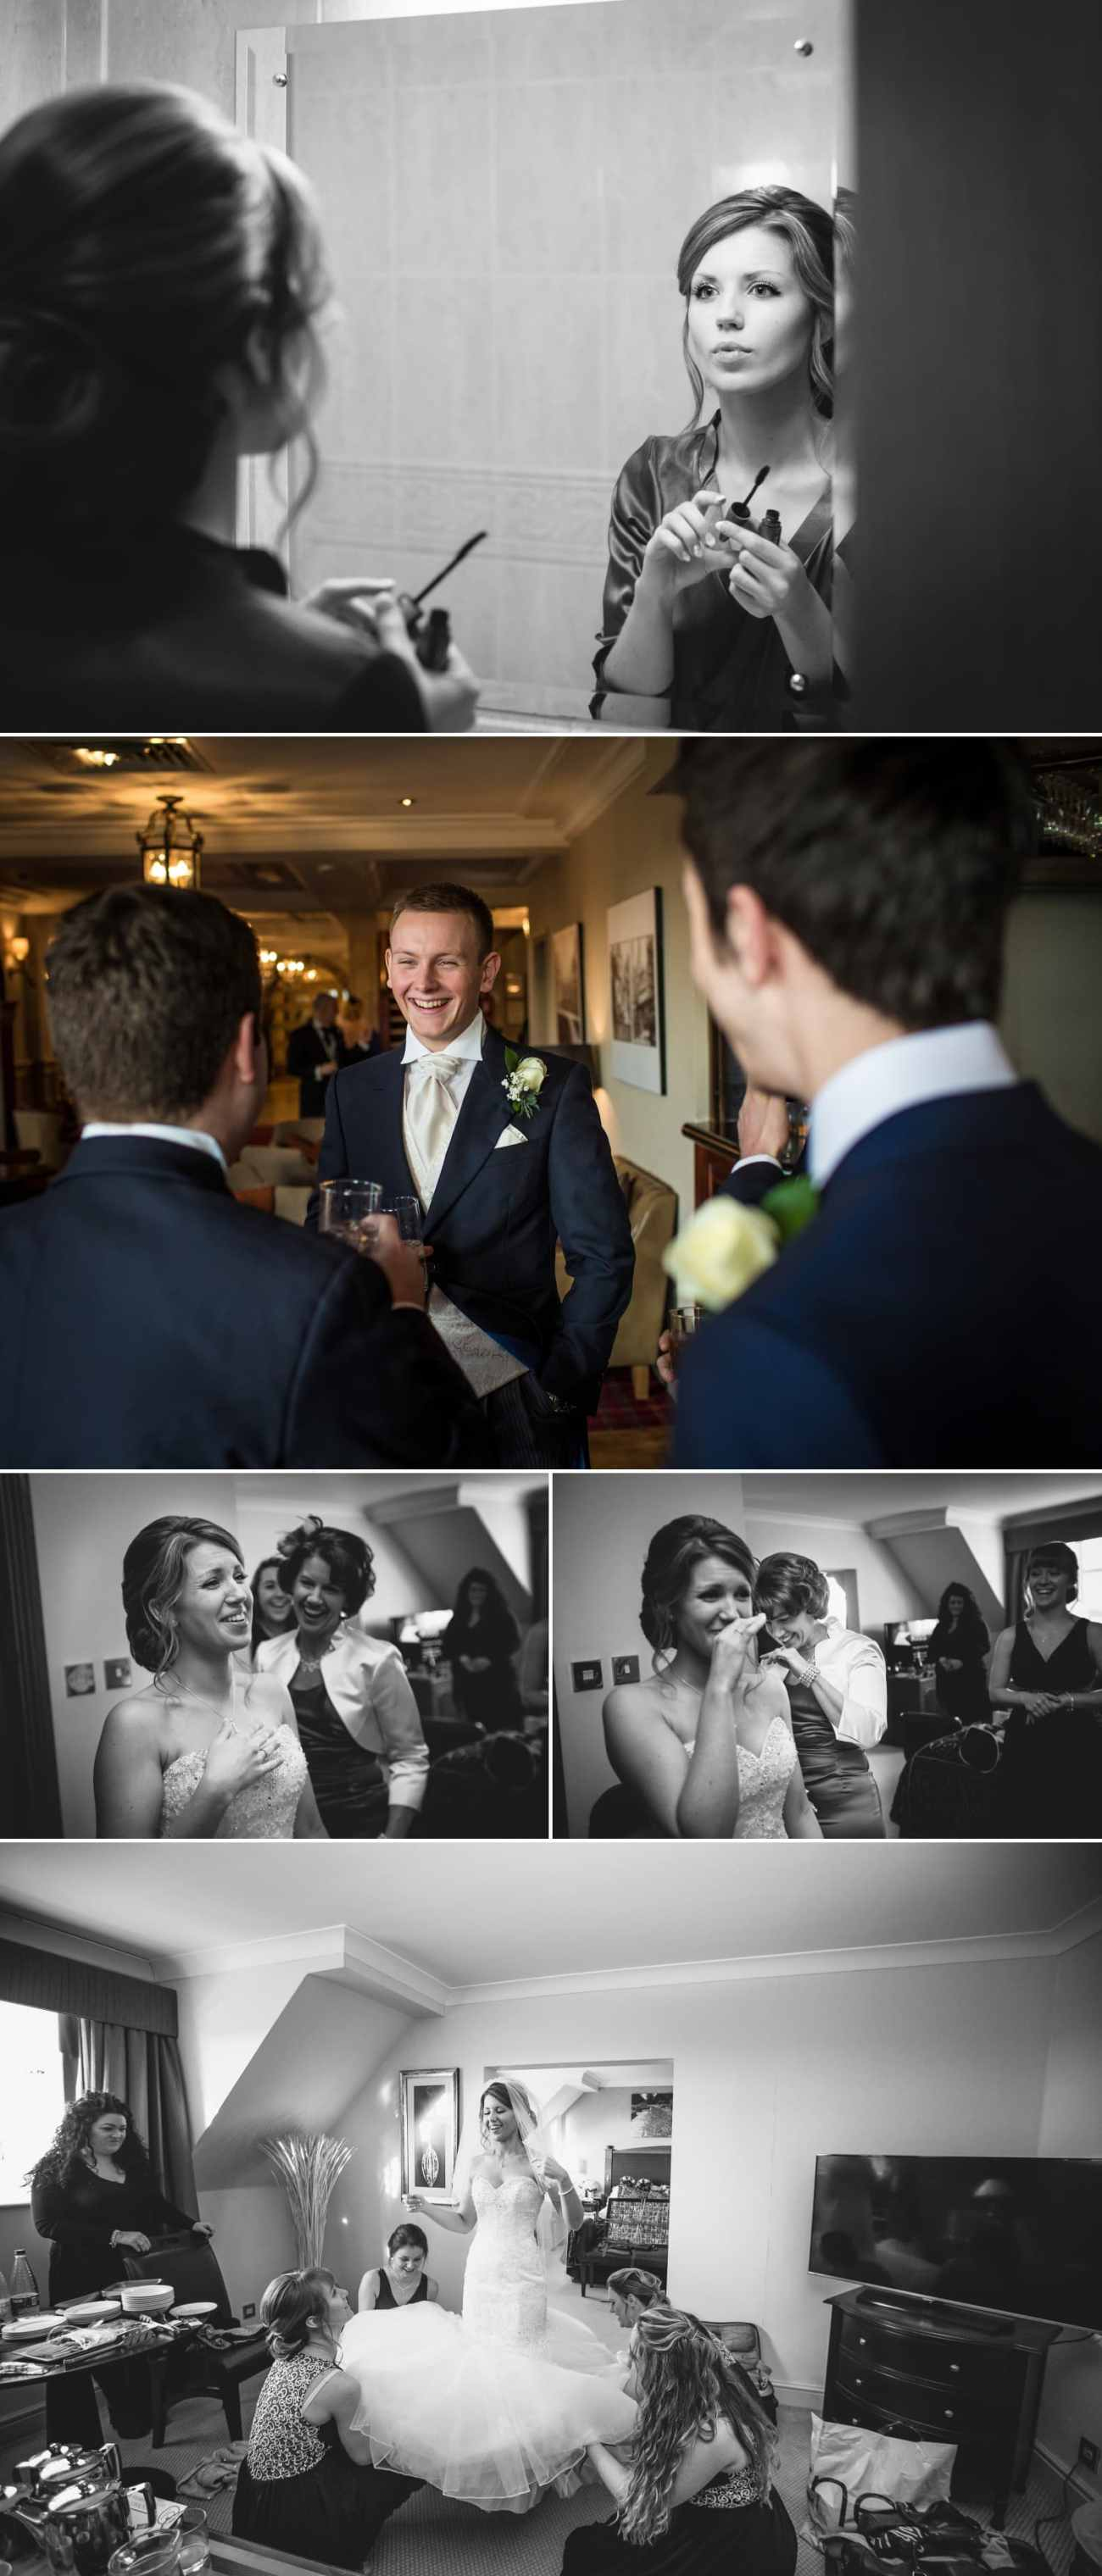 Wedding photography of the bride getting ready at Carden Park, Chester, Cheshire